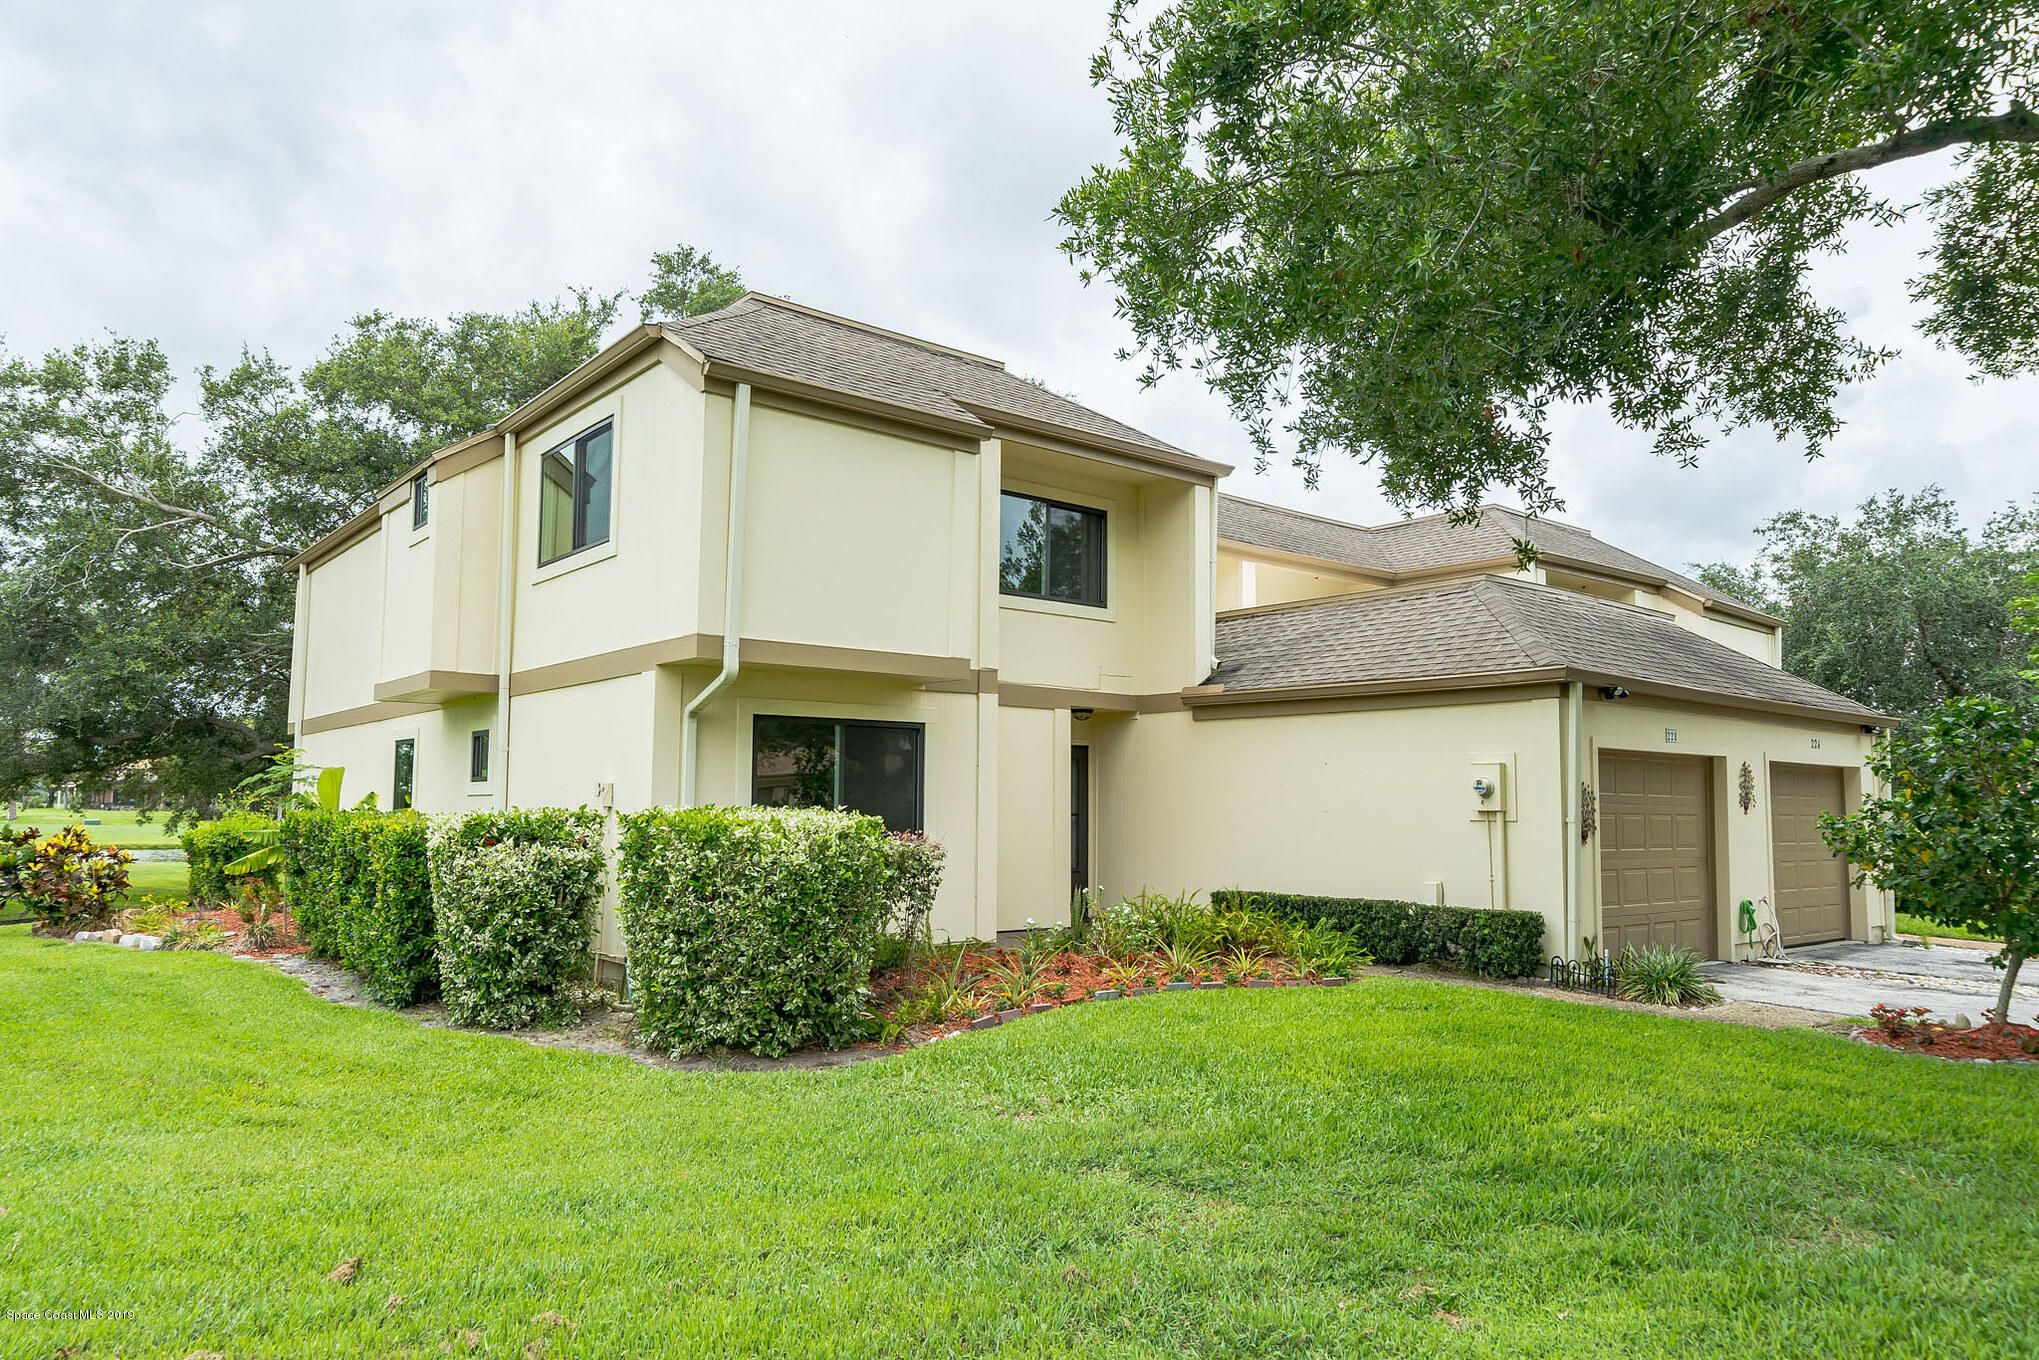 Single Family Homes for Sale at 228 Country Club Melbourne, Florida 32940 United States